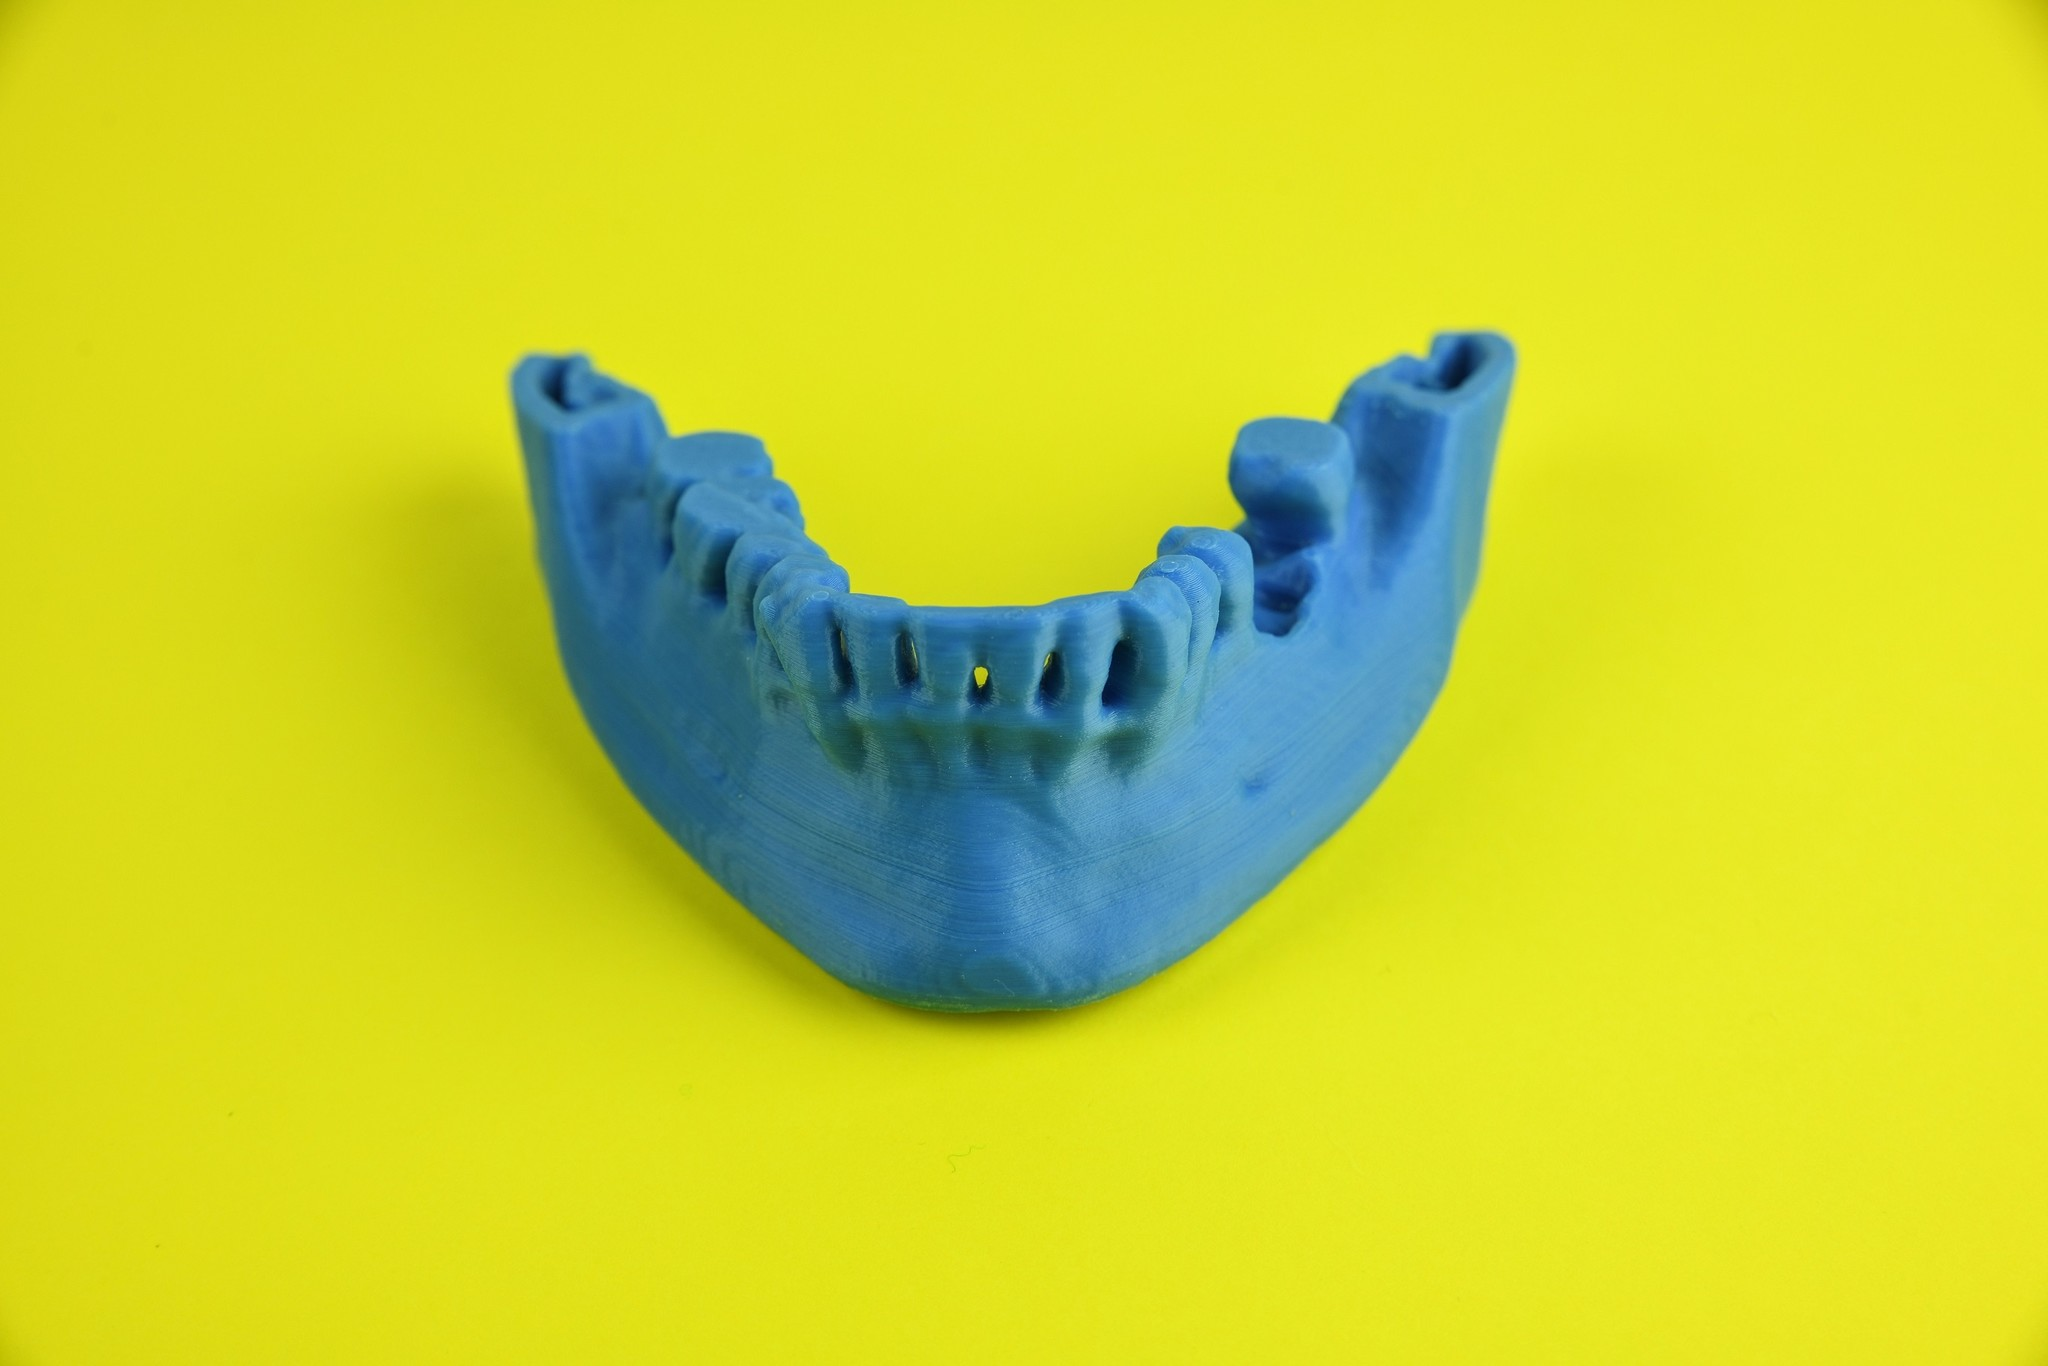 3D printed lower jaw model